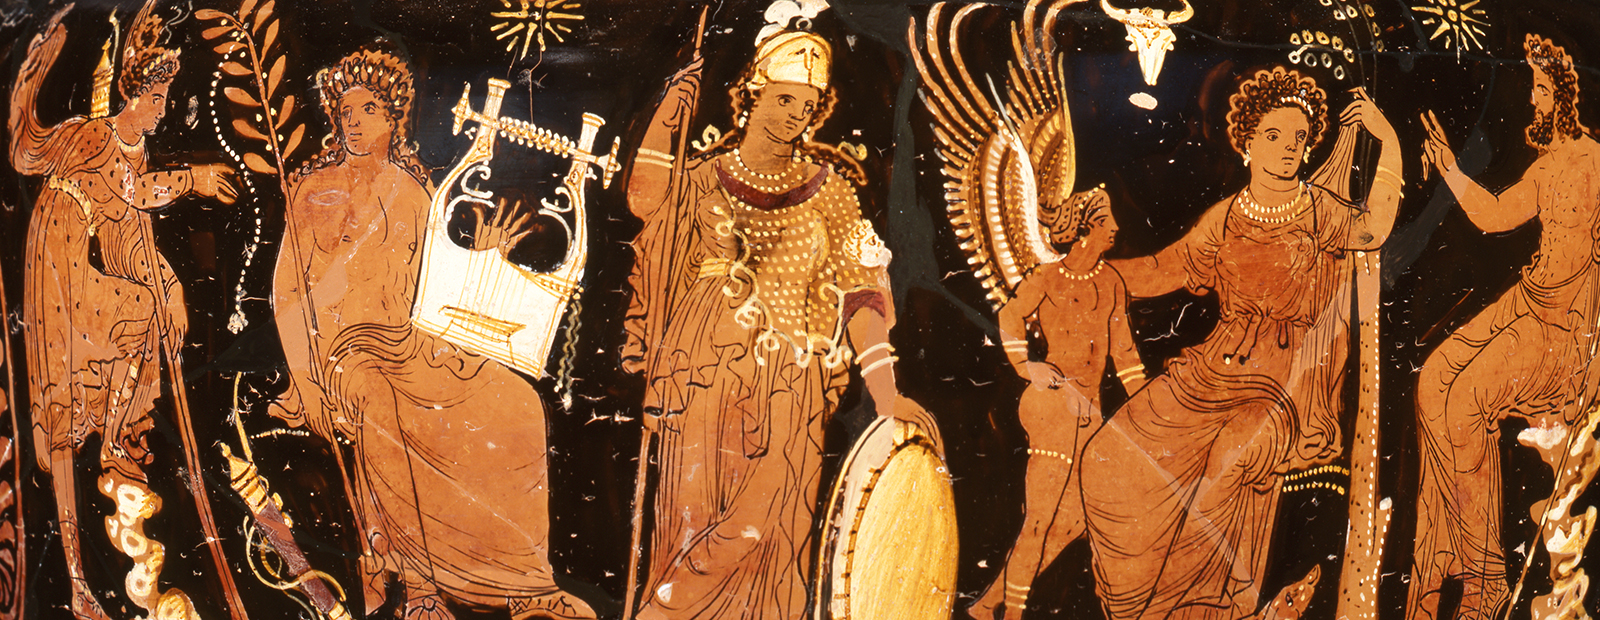 Gods and goddesses on volute-krater